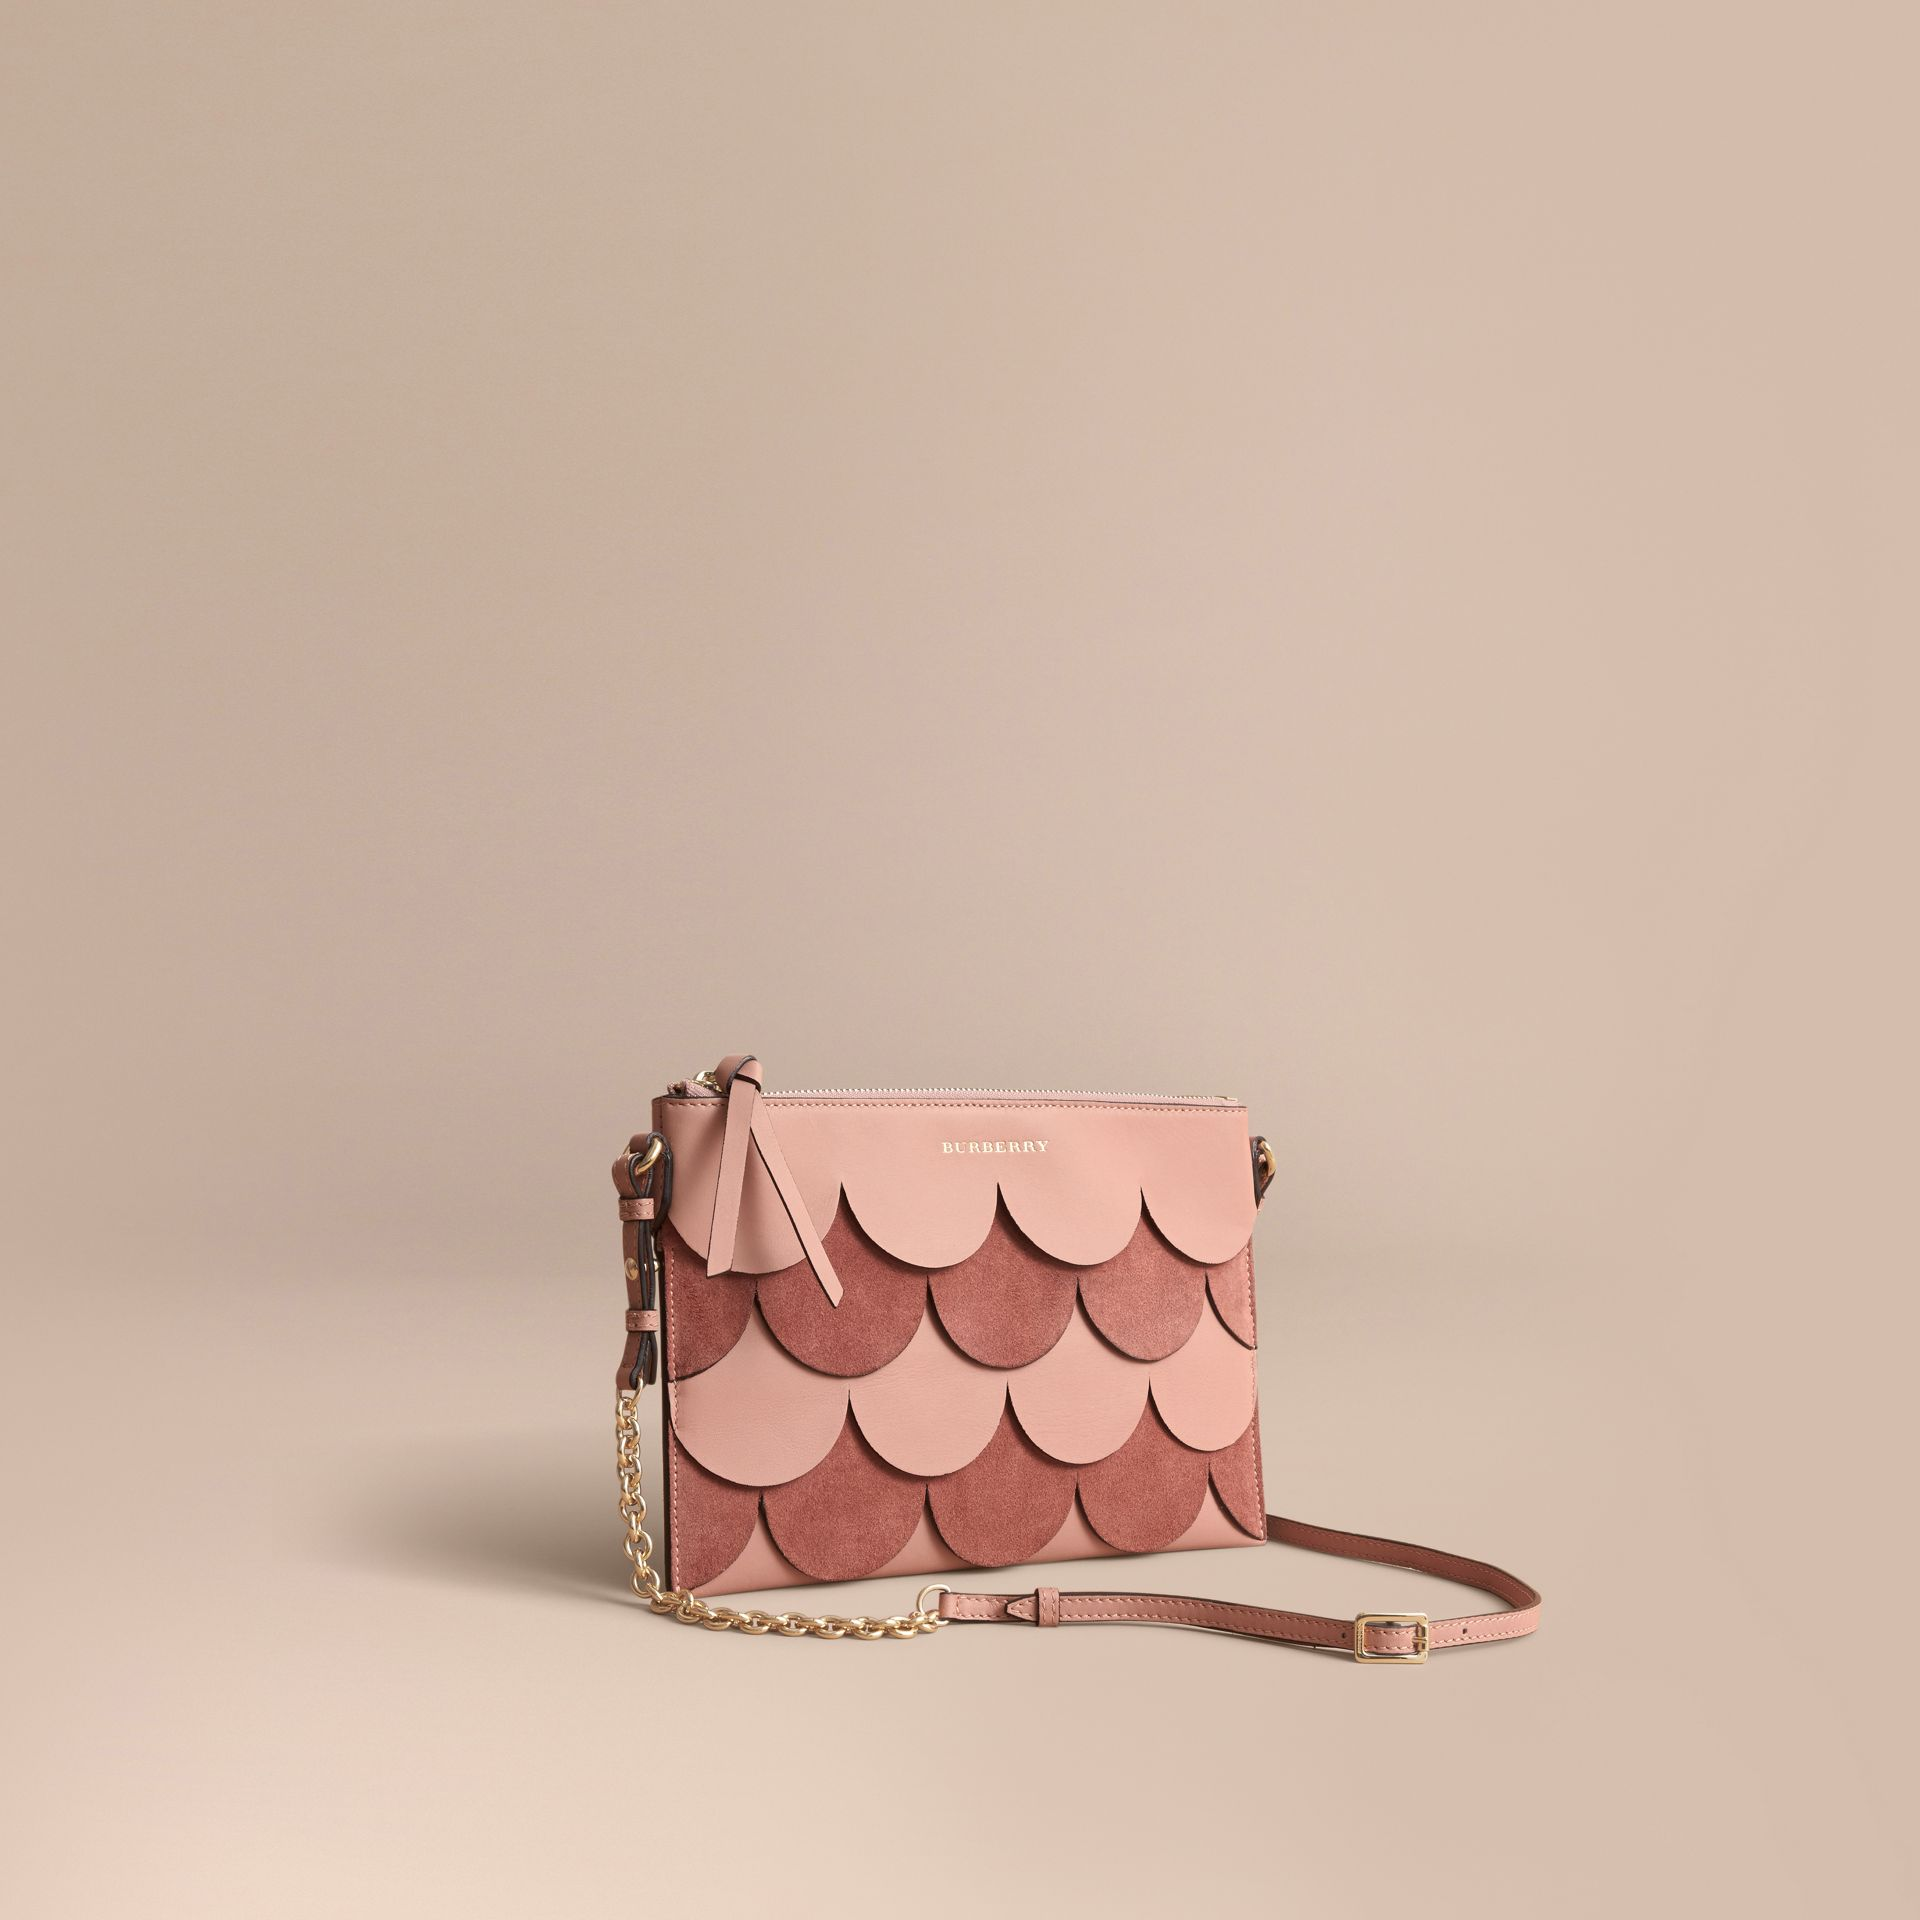 Two-tone Scalloped Leather and Suede Clutch Bag in Ash Rose - Women | Burberry - gallery image 0